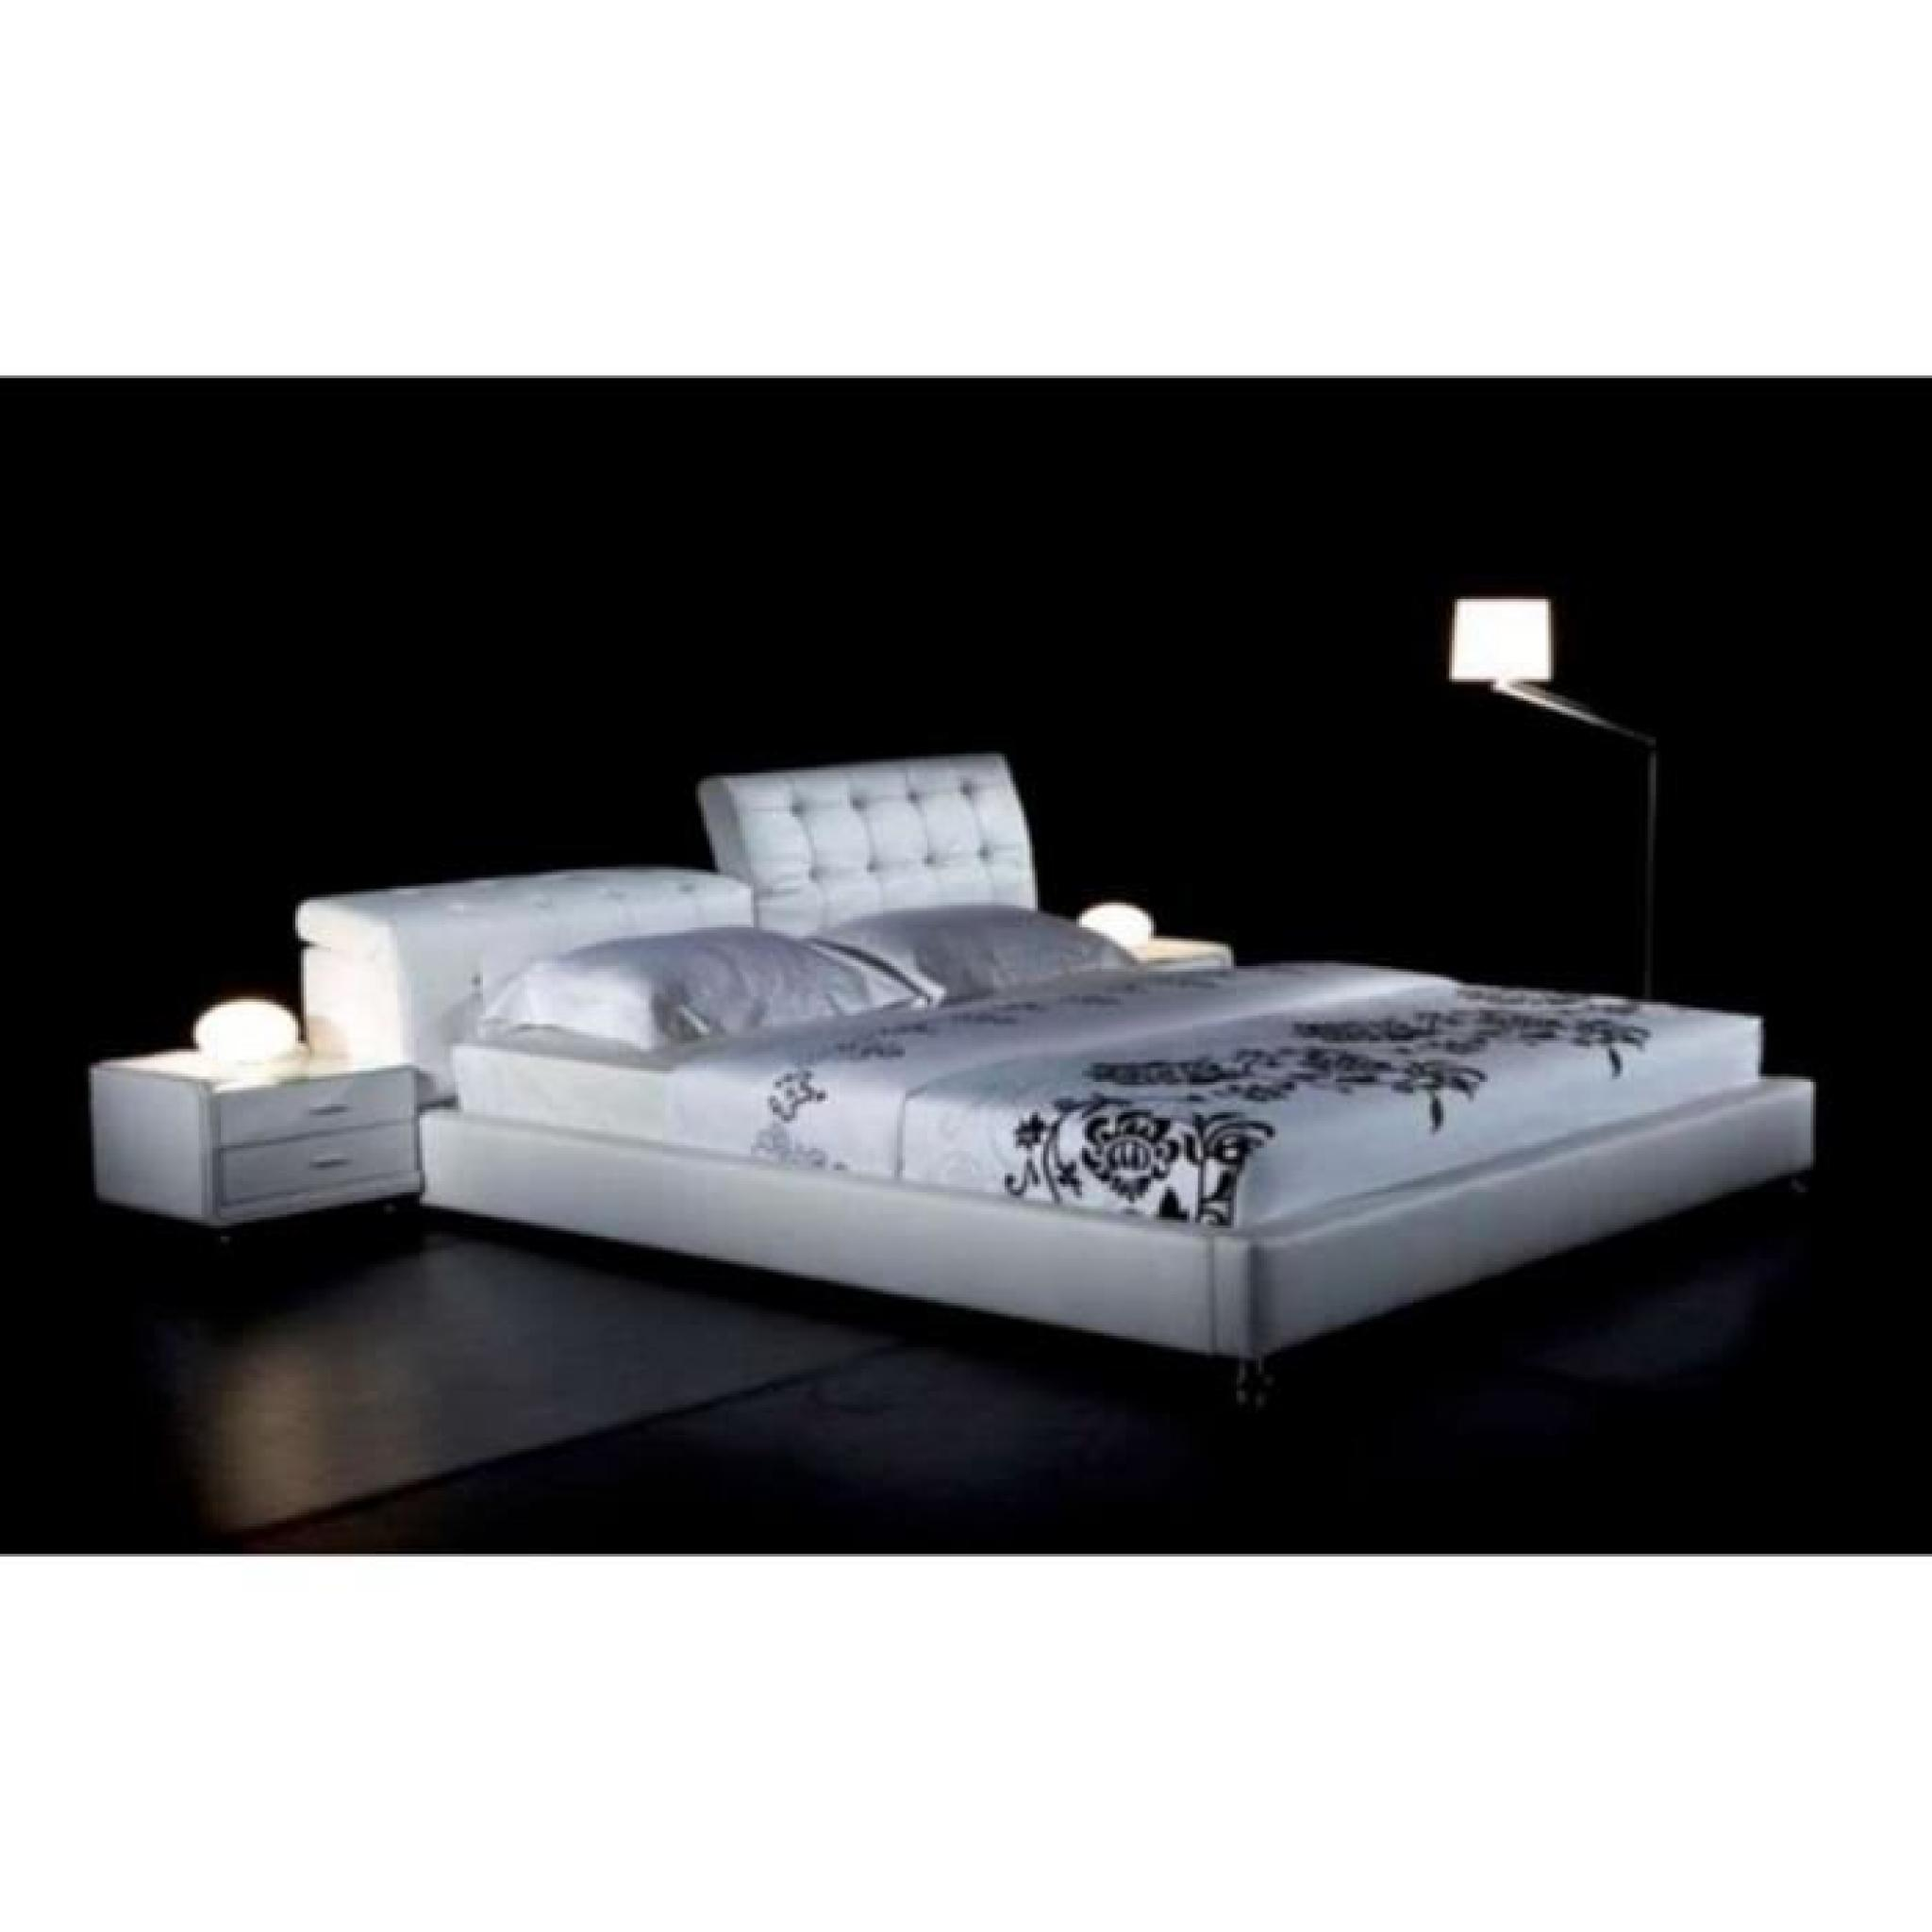 justhome theatro blanc lit rembourr en cuir cologique 140 x 200 cm achat vente lit pas cher. Black Bedroom Furniture Sets. Home Design Ideas